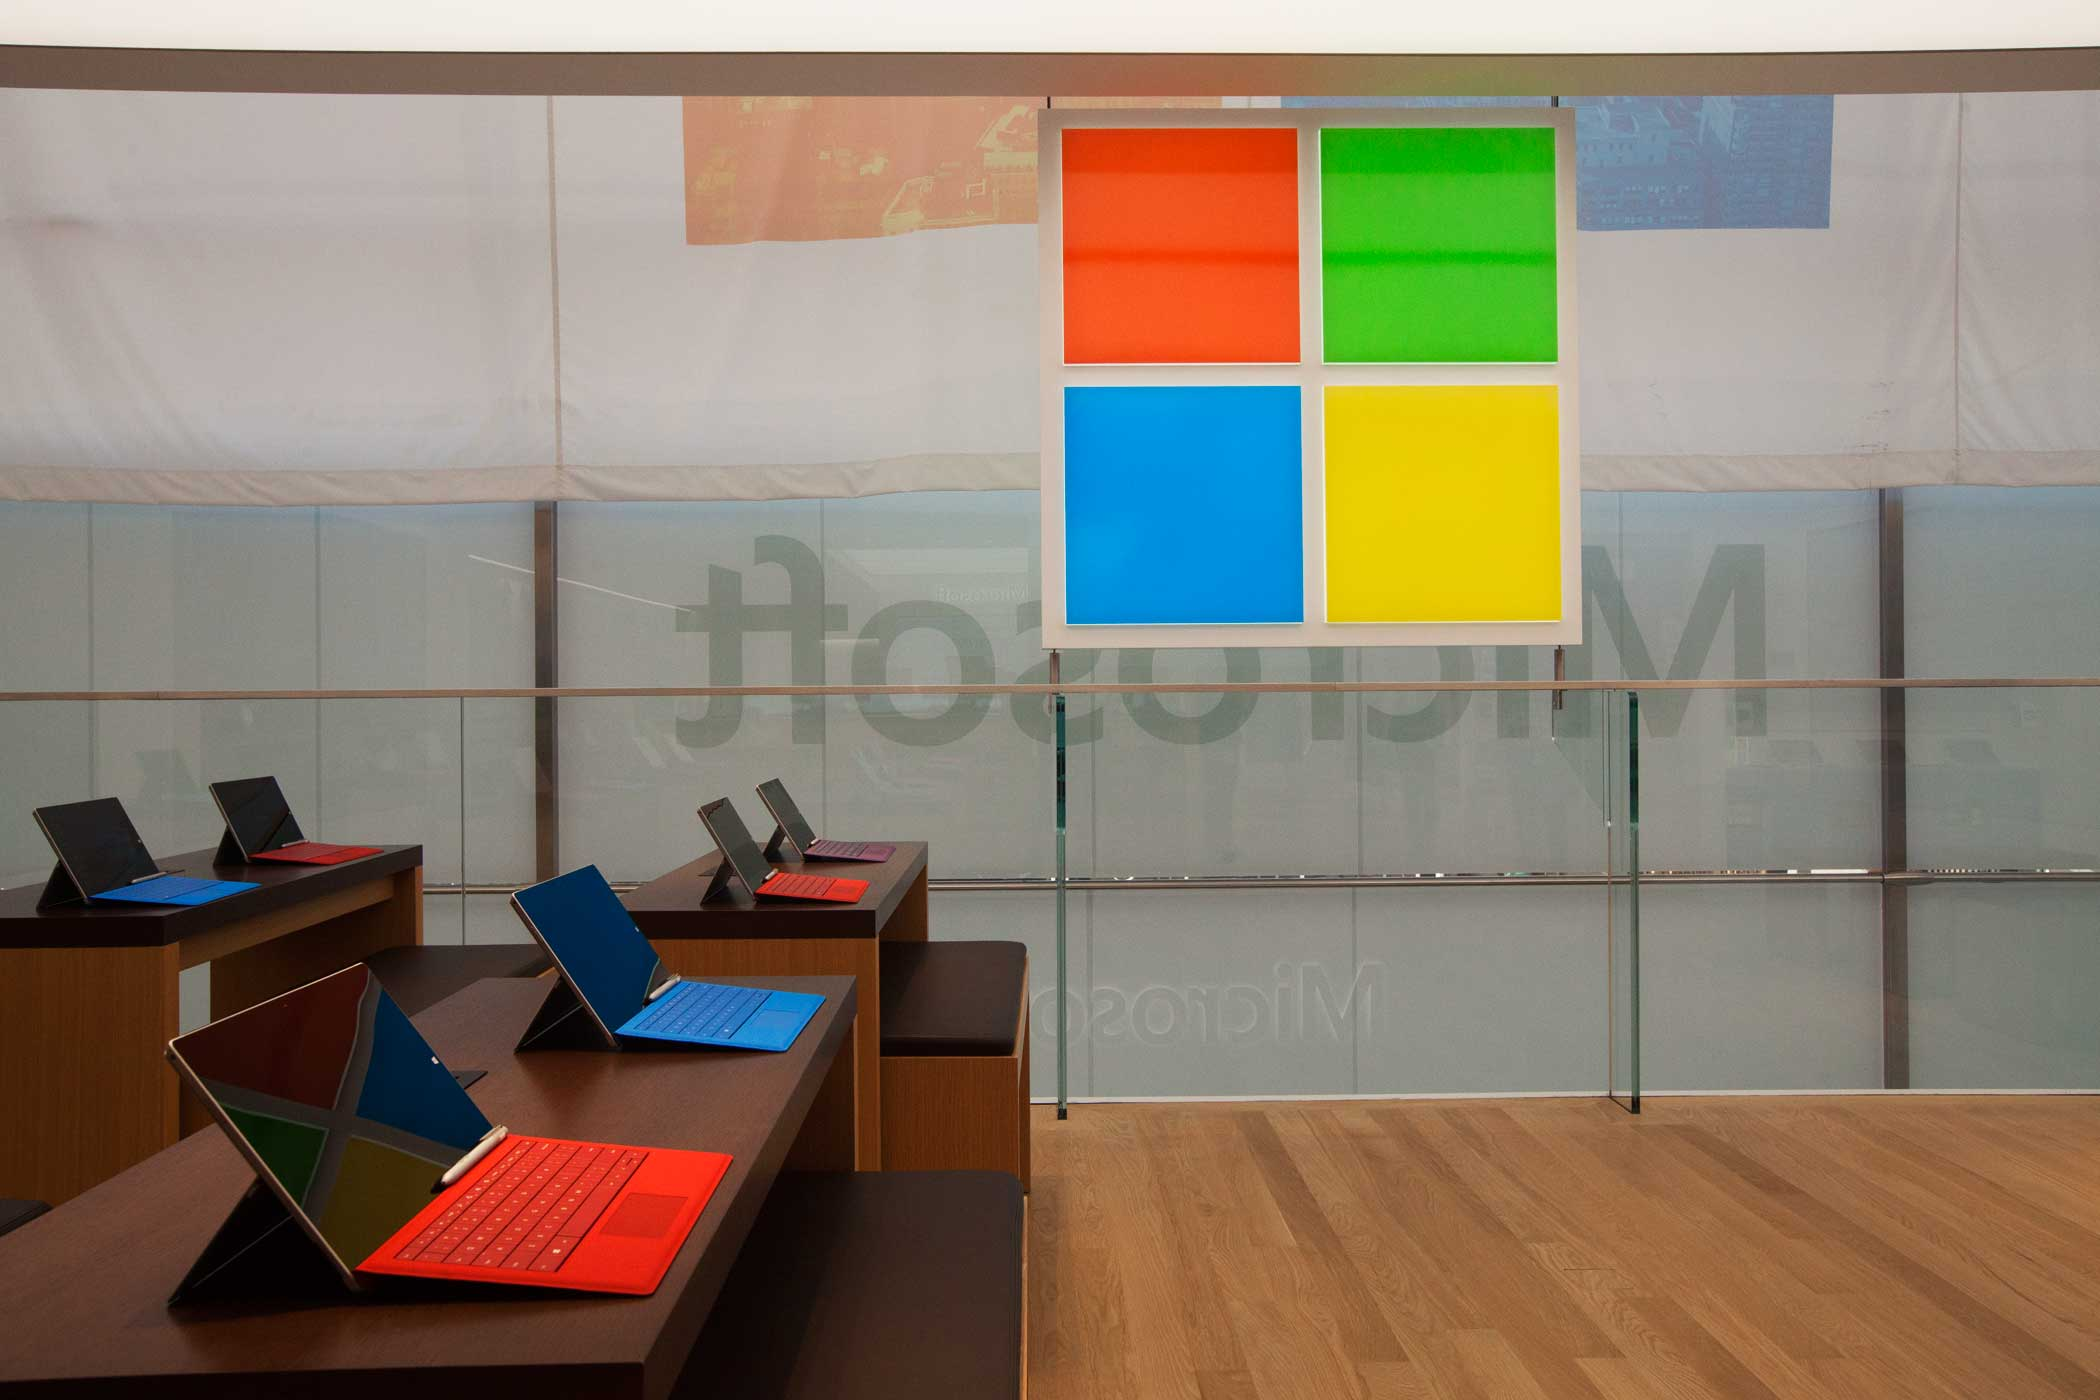 <b>Microsoft Store</b> Surface Pro computers with the Microsoft logo that will  raise and lower itself with the sun.